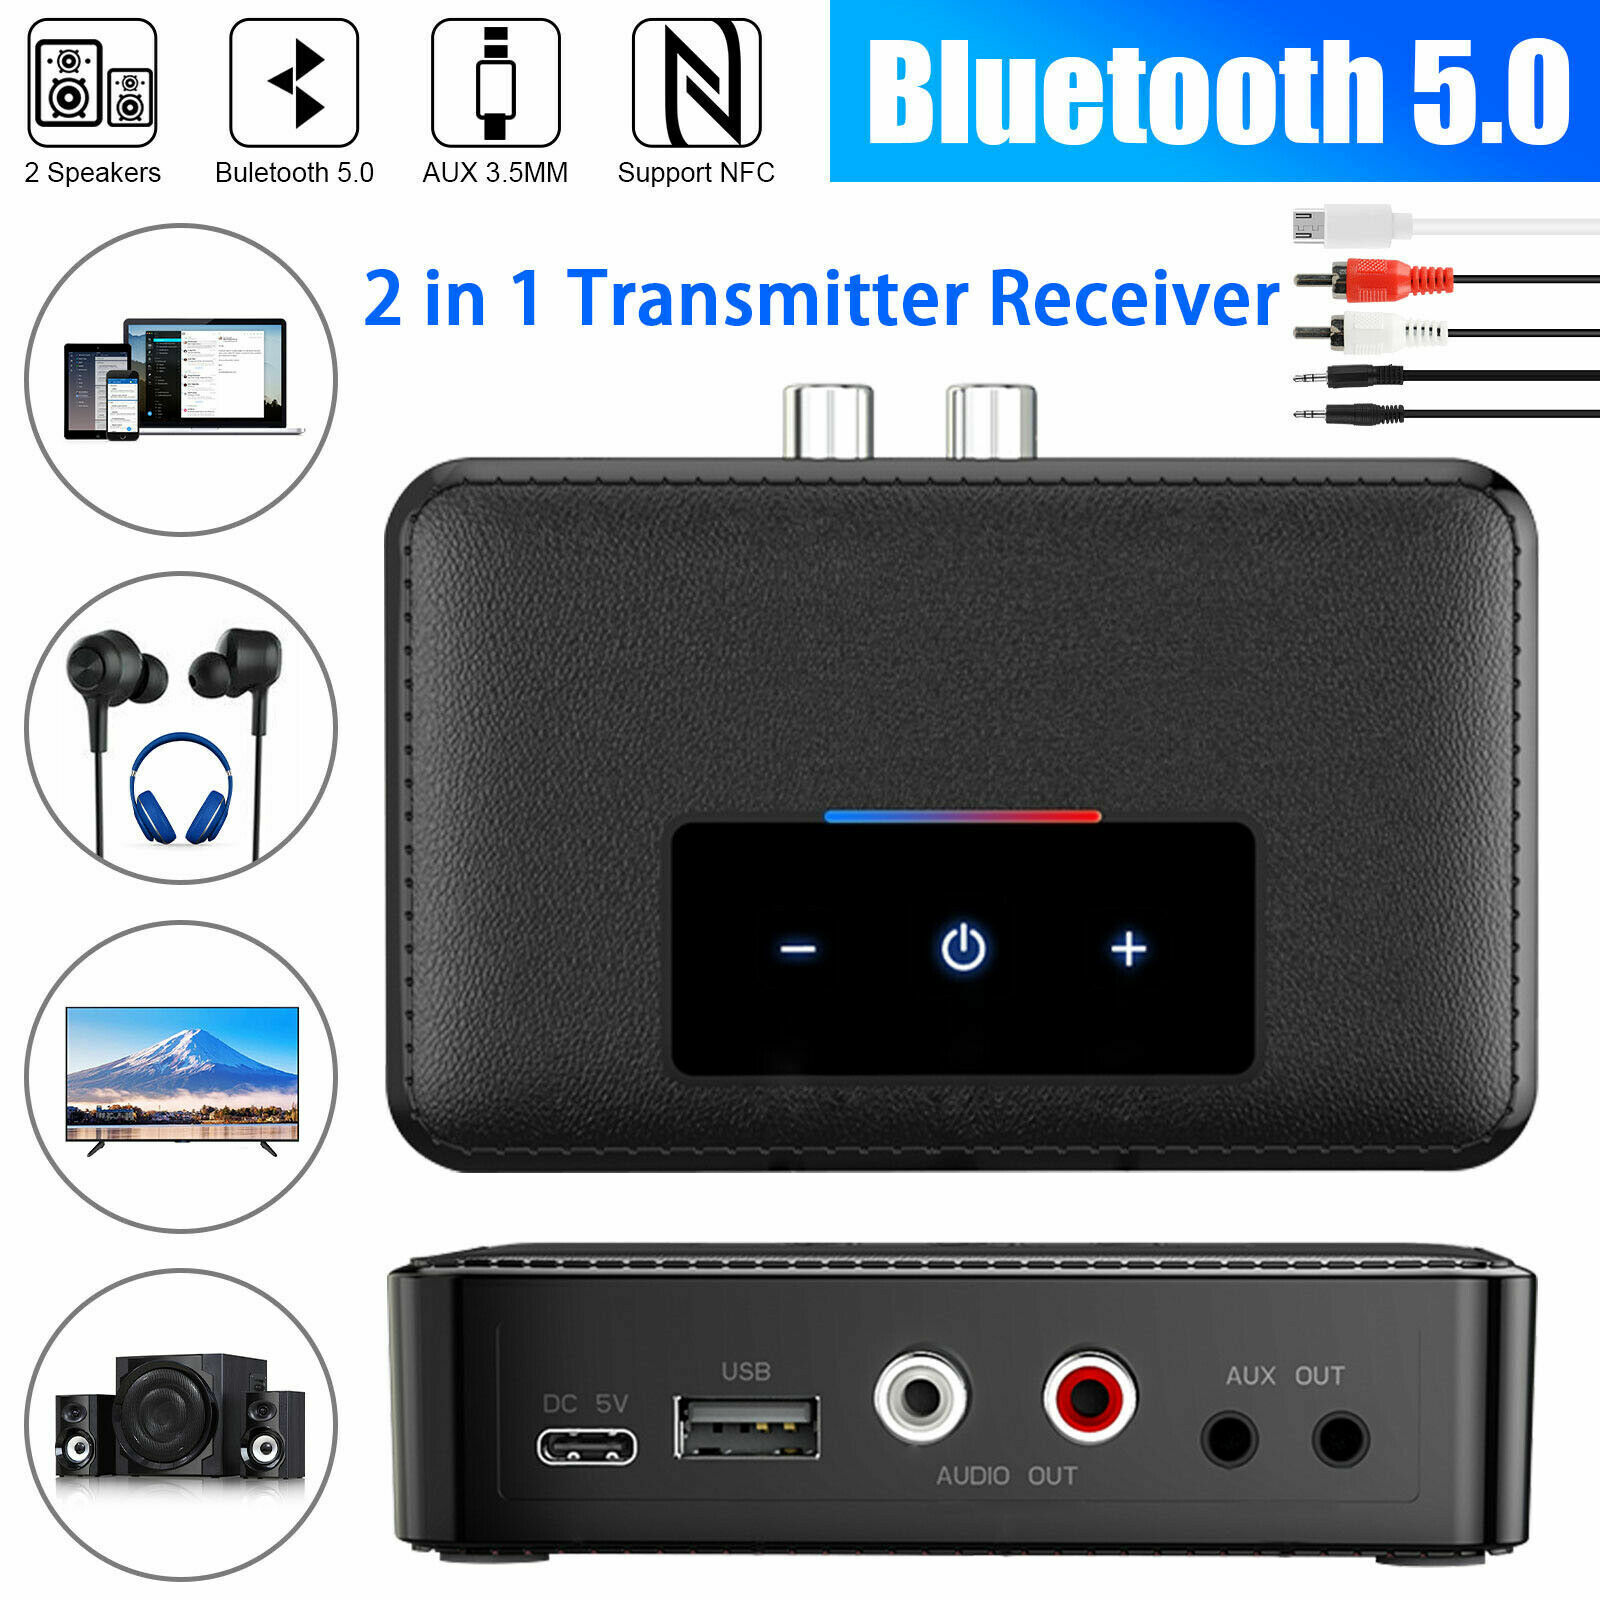 NFC Bluetooth 5.0 Receiver Transmitter Wireless 3.5mm AUX Jack RCA Audio Adapter - $19.99